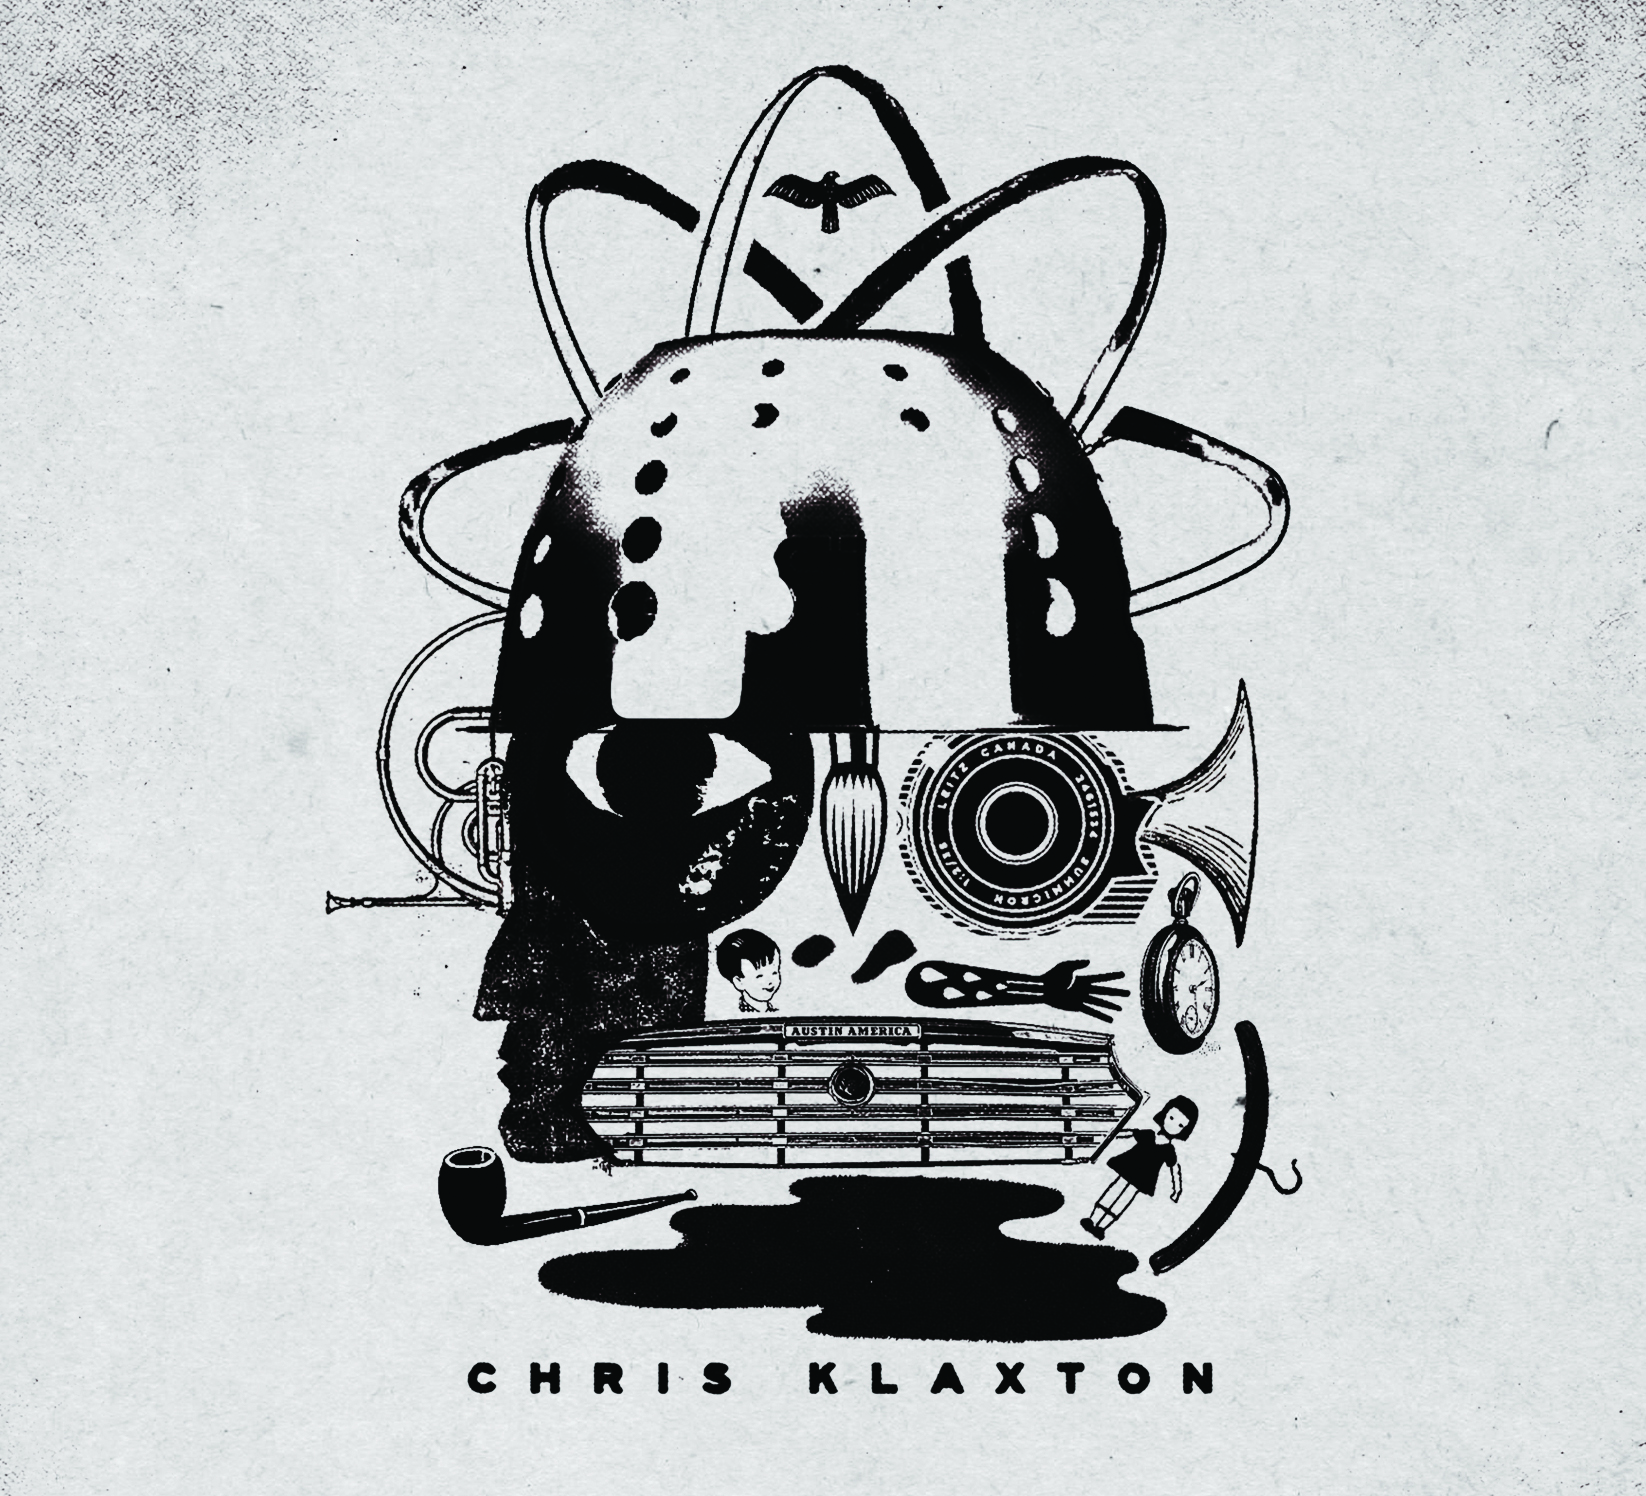 Jazz Views Reviews Chris Klaxton's 'Collage'